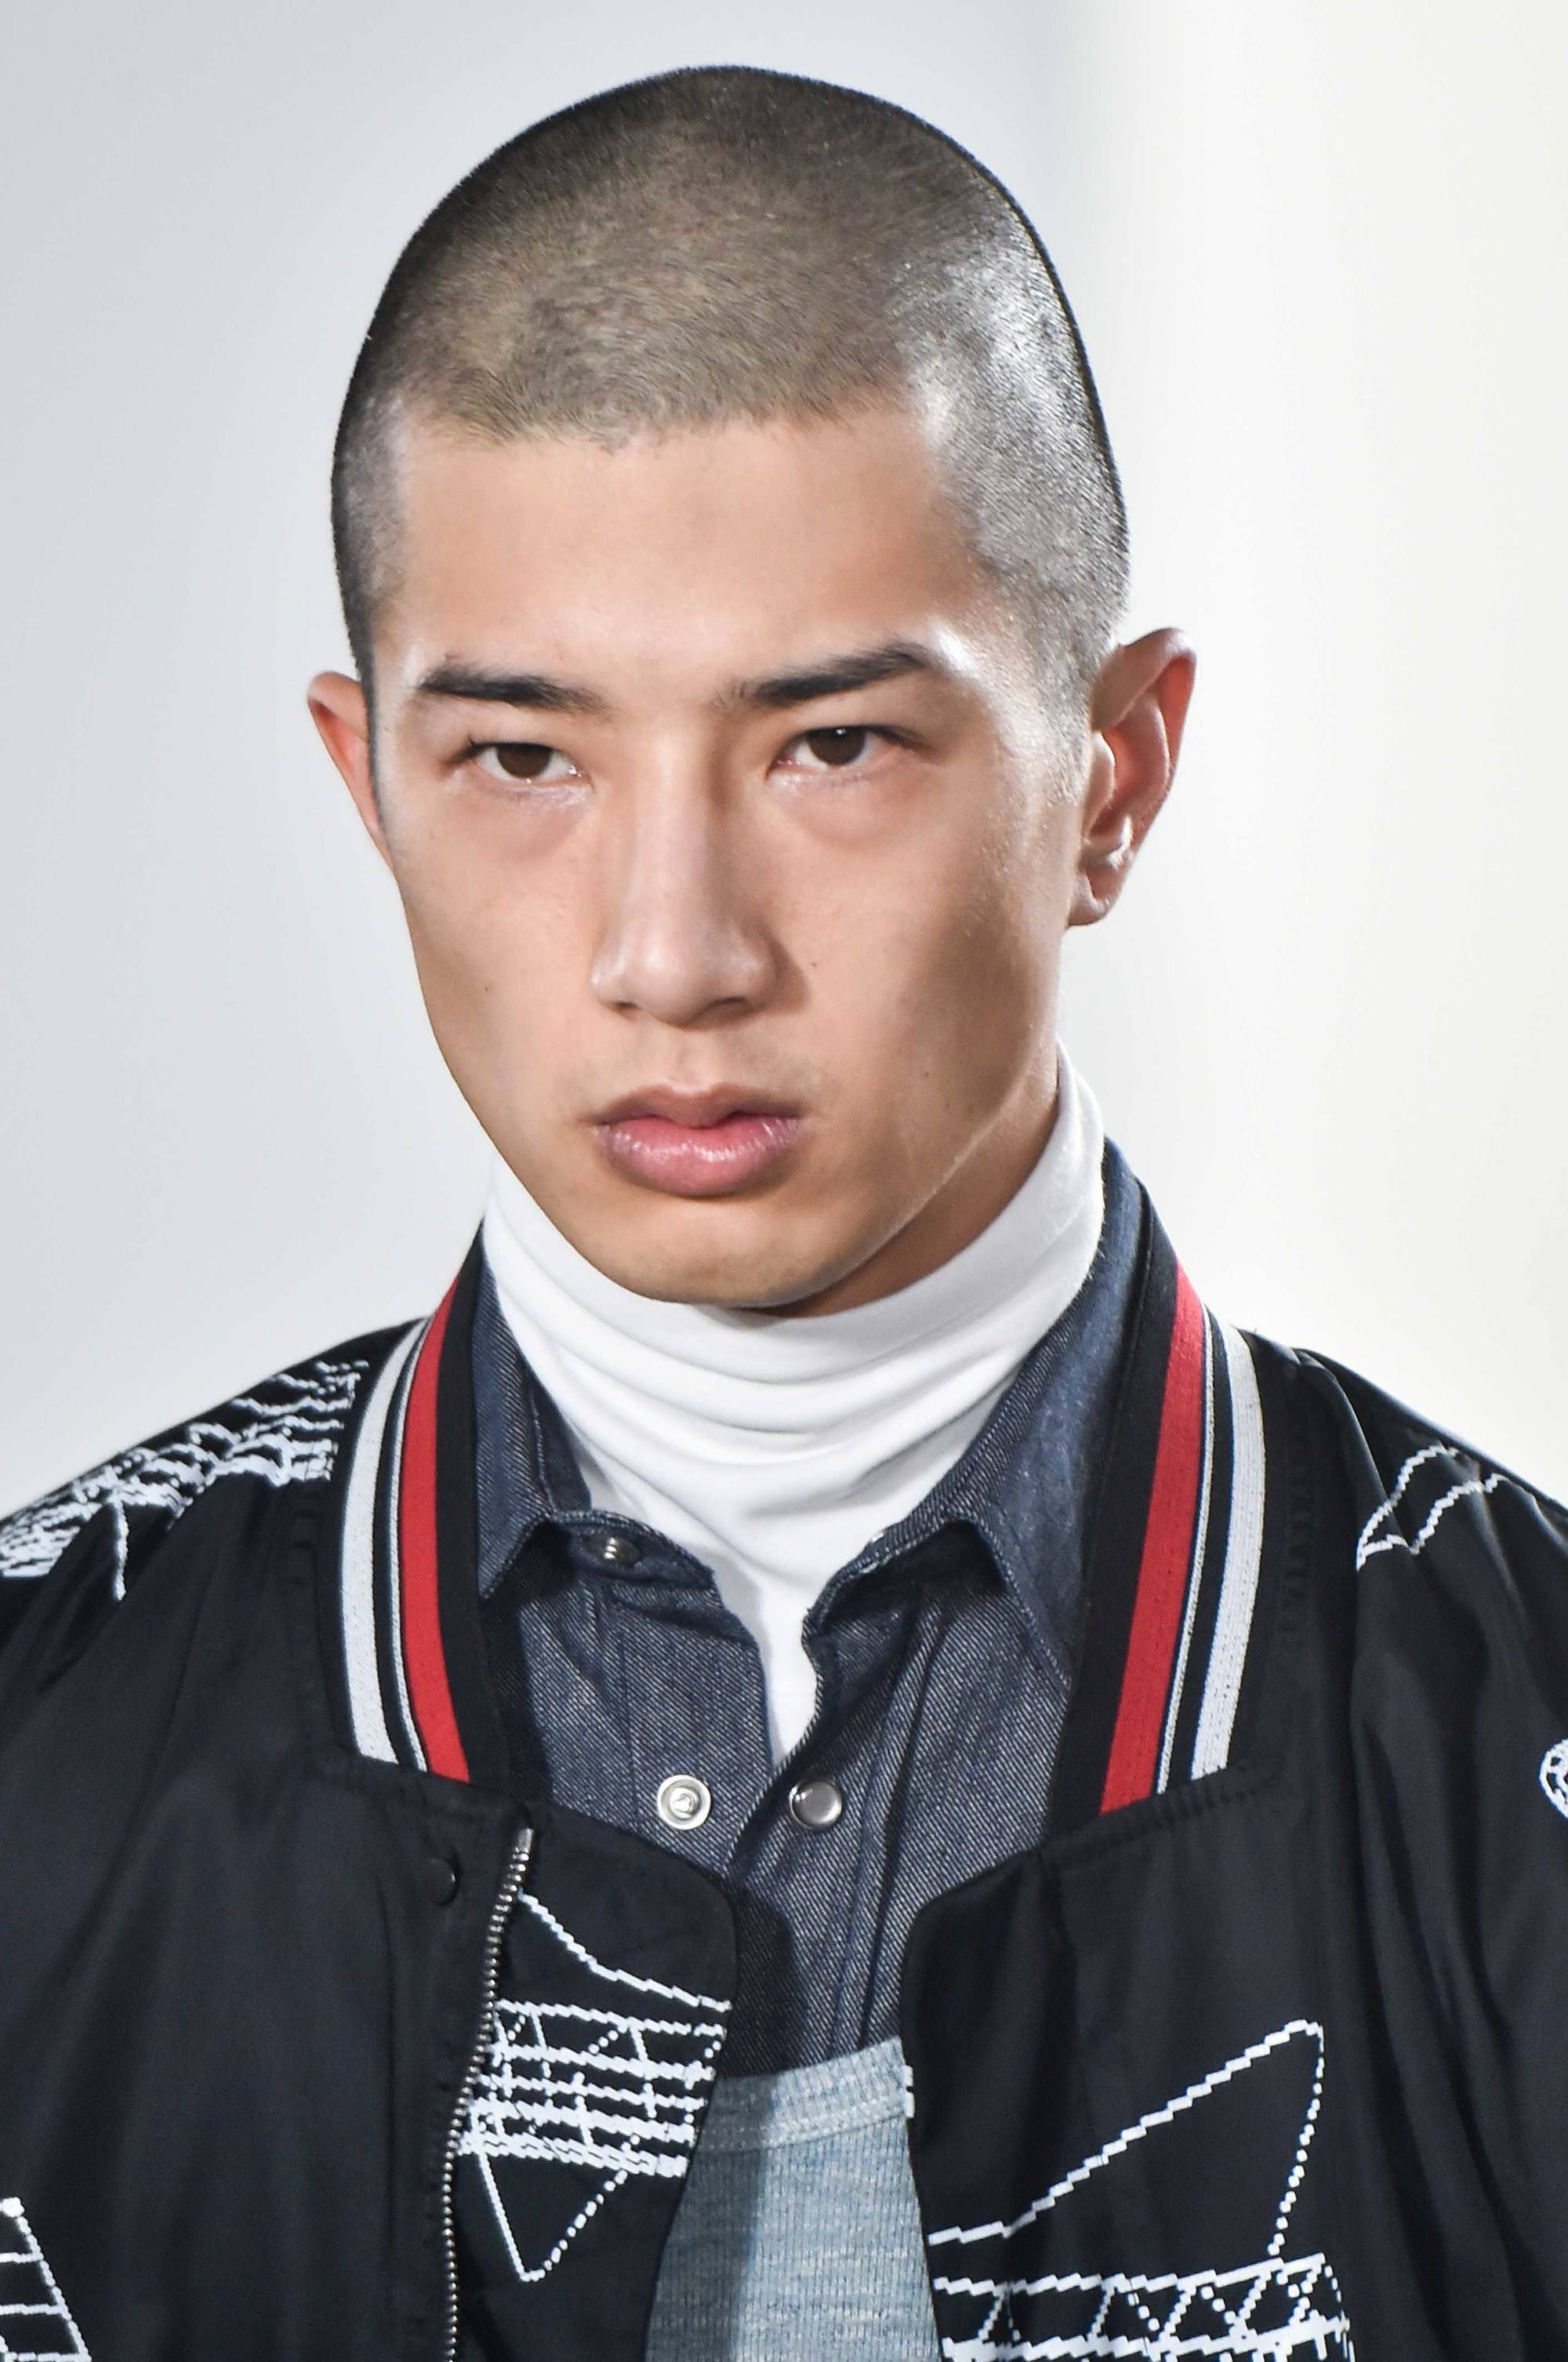 New buzz cut men's hair ideas to try close cropped buzz